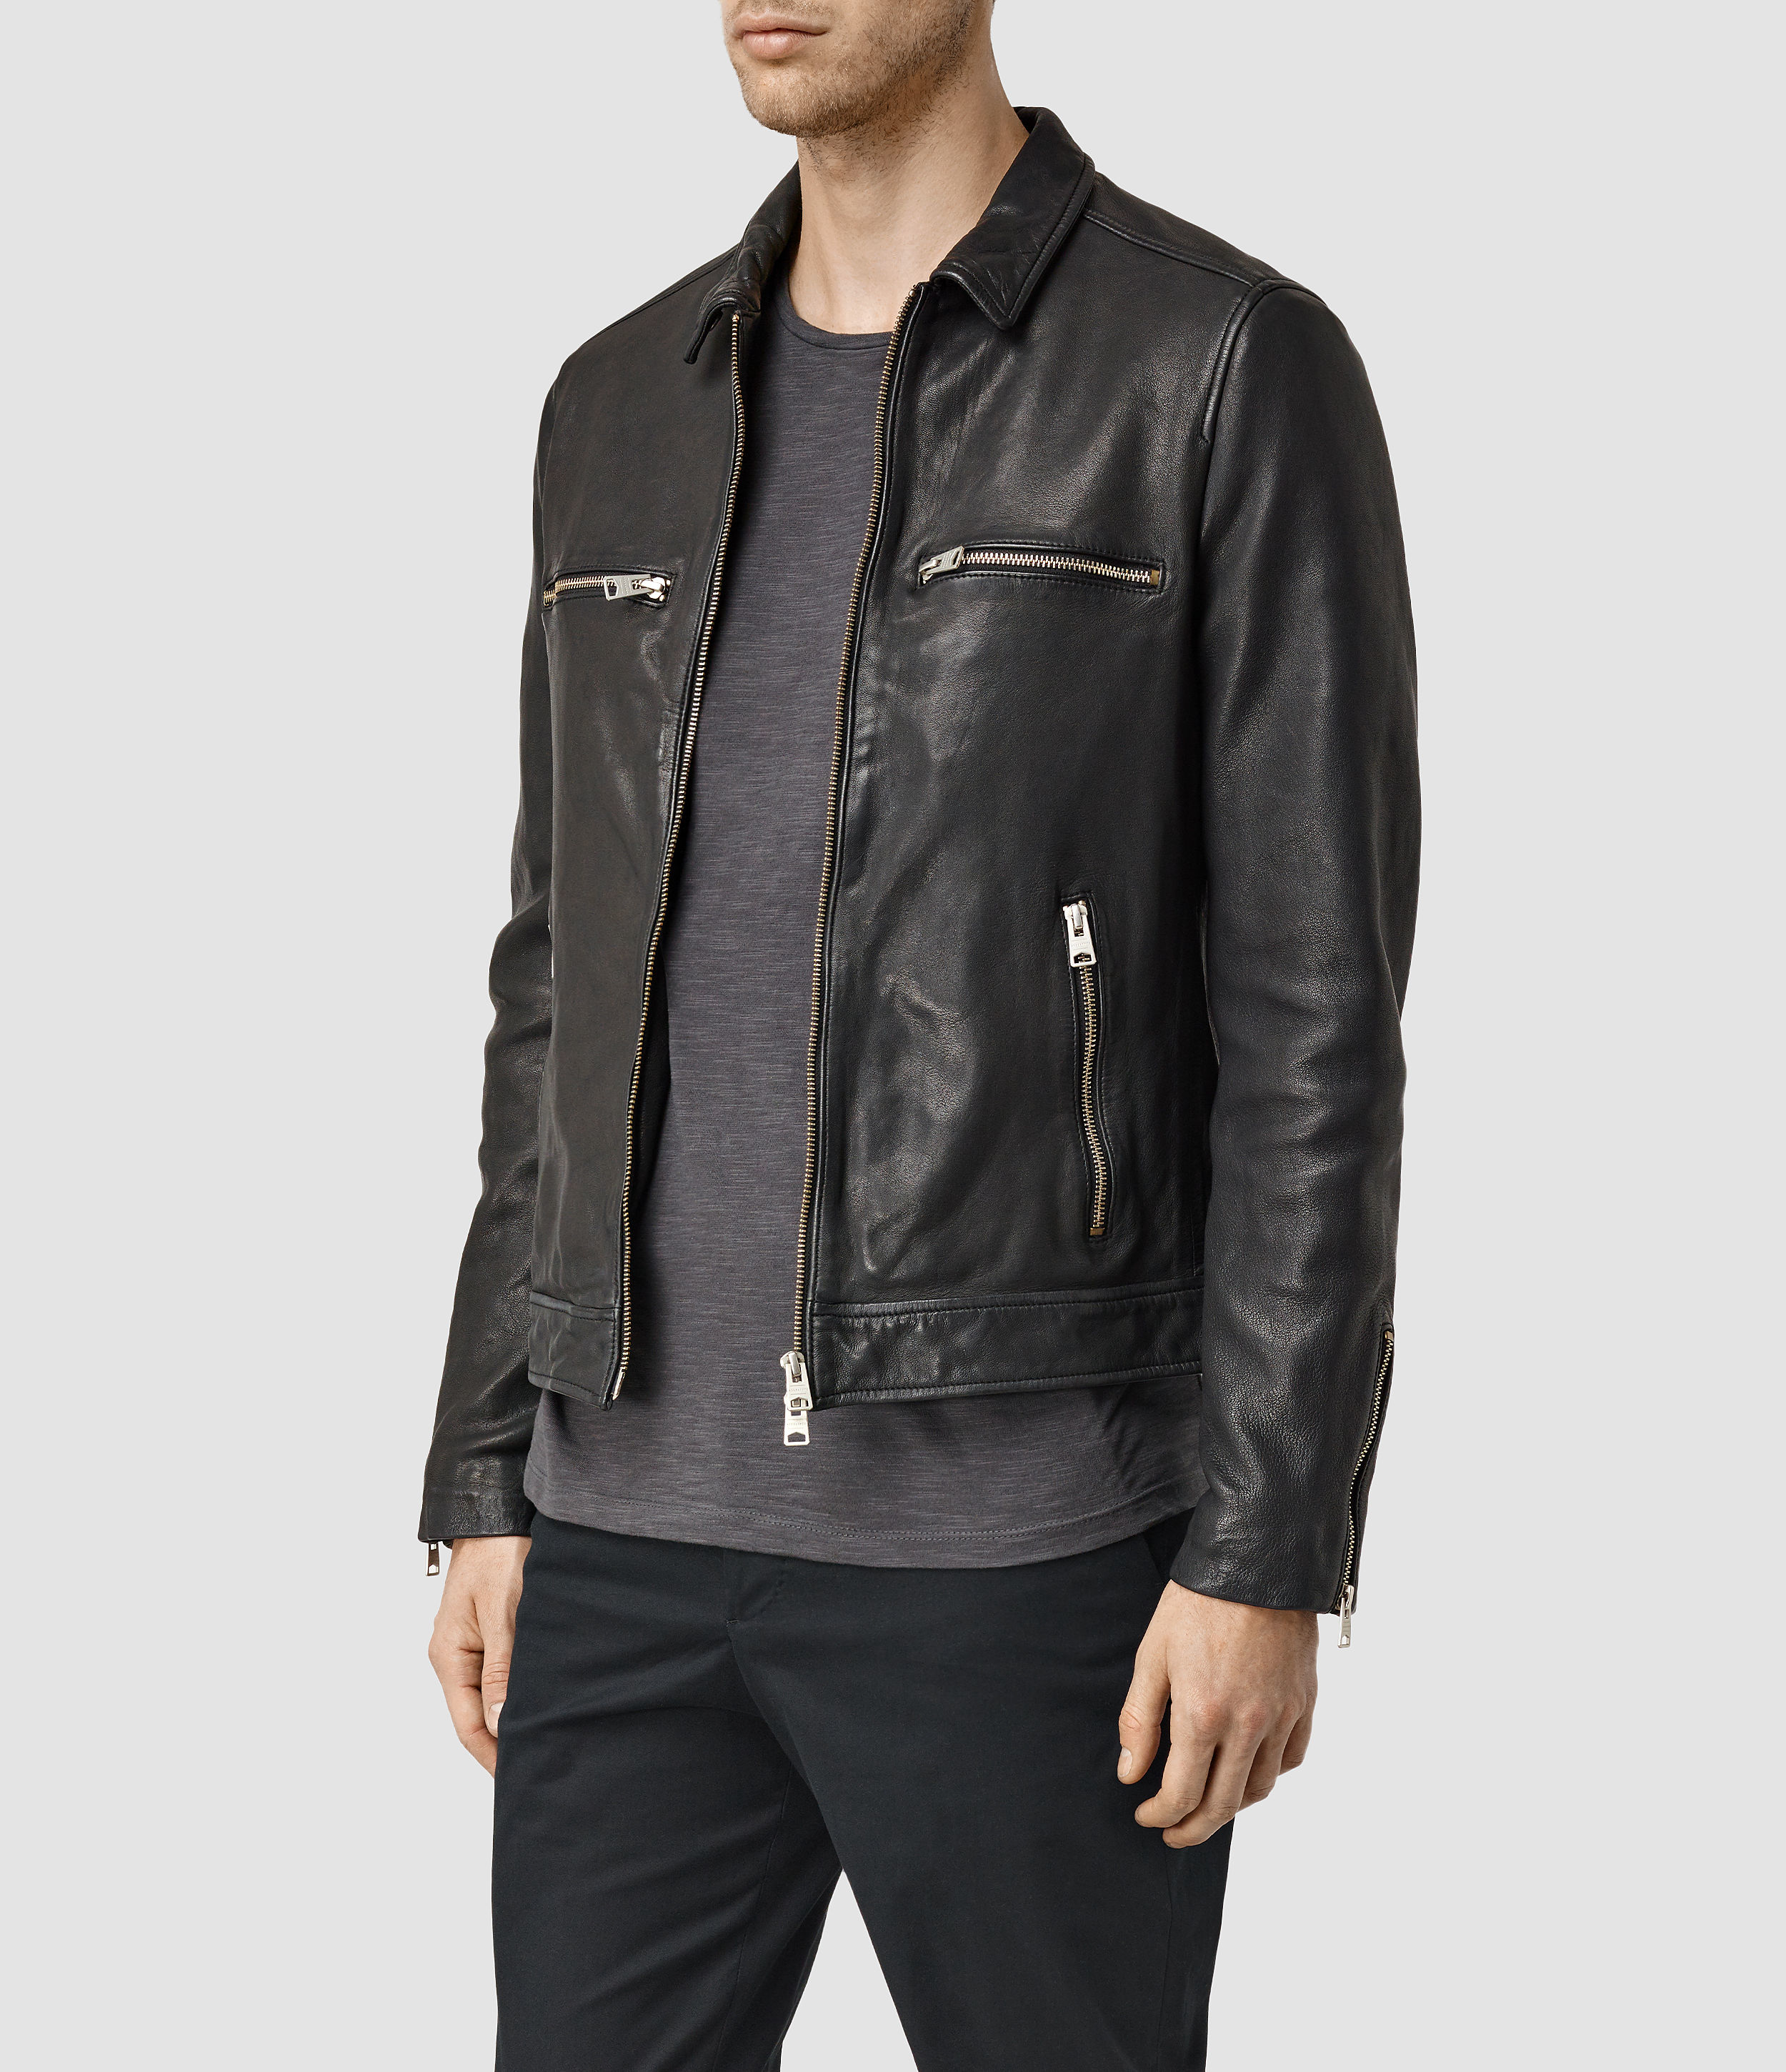 Lyst Allsaints Austell Leather Jacket Usa Usa In Black